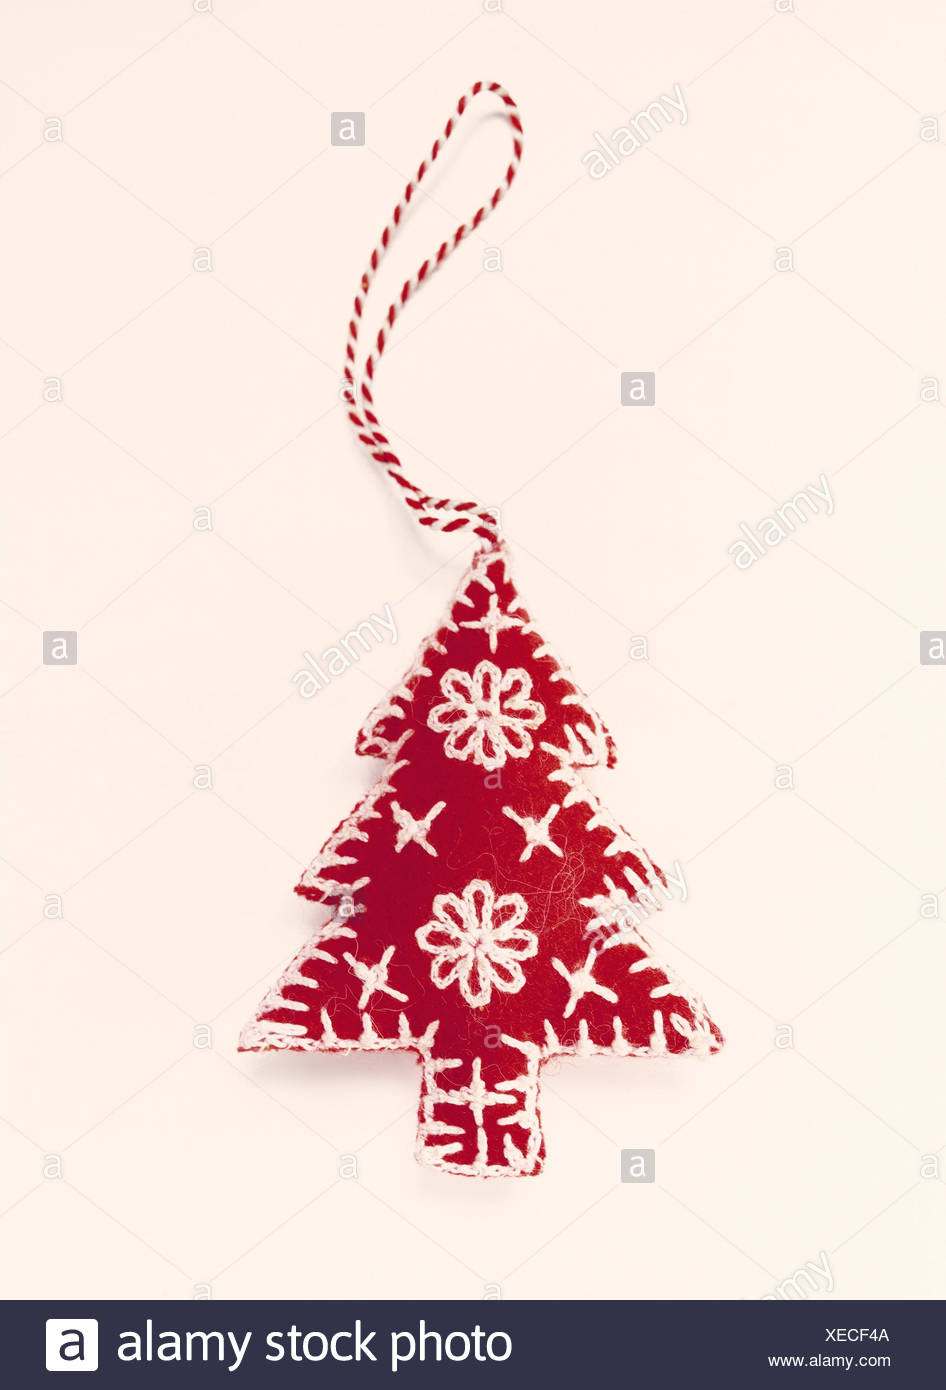 christmaschristmas decorationchristmas tree decorationsstill lifecloth treecut outdecoration objectdraperyembroideredembroideryfeltfestive - Cut Out Christmas Decorations